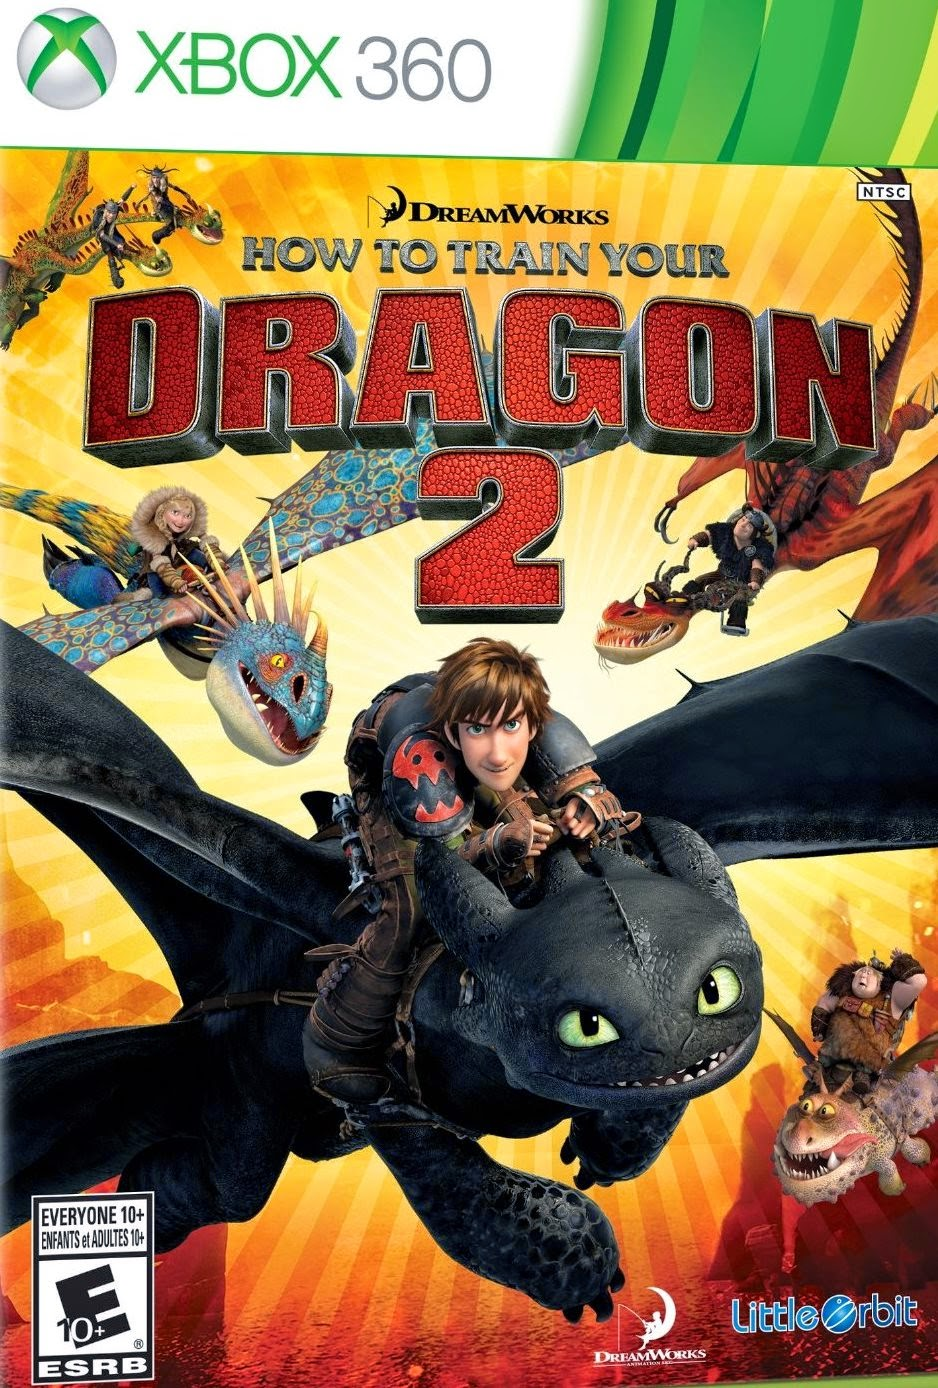 Cover Caratula How to Train Your Dragon 2 XBOX 360 ESPAÑOL Descargar